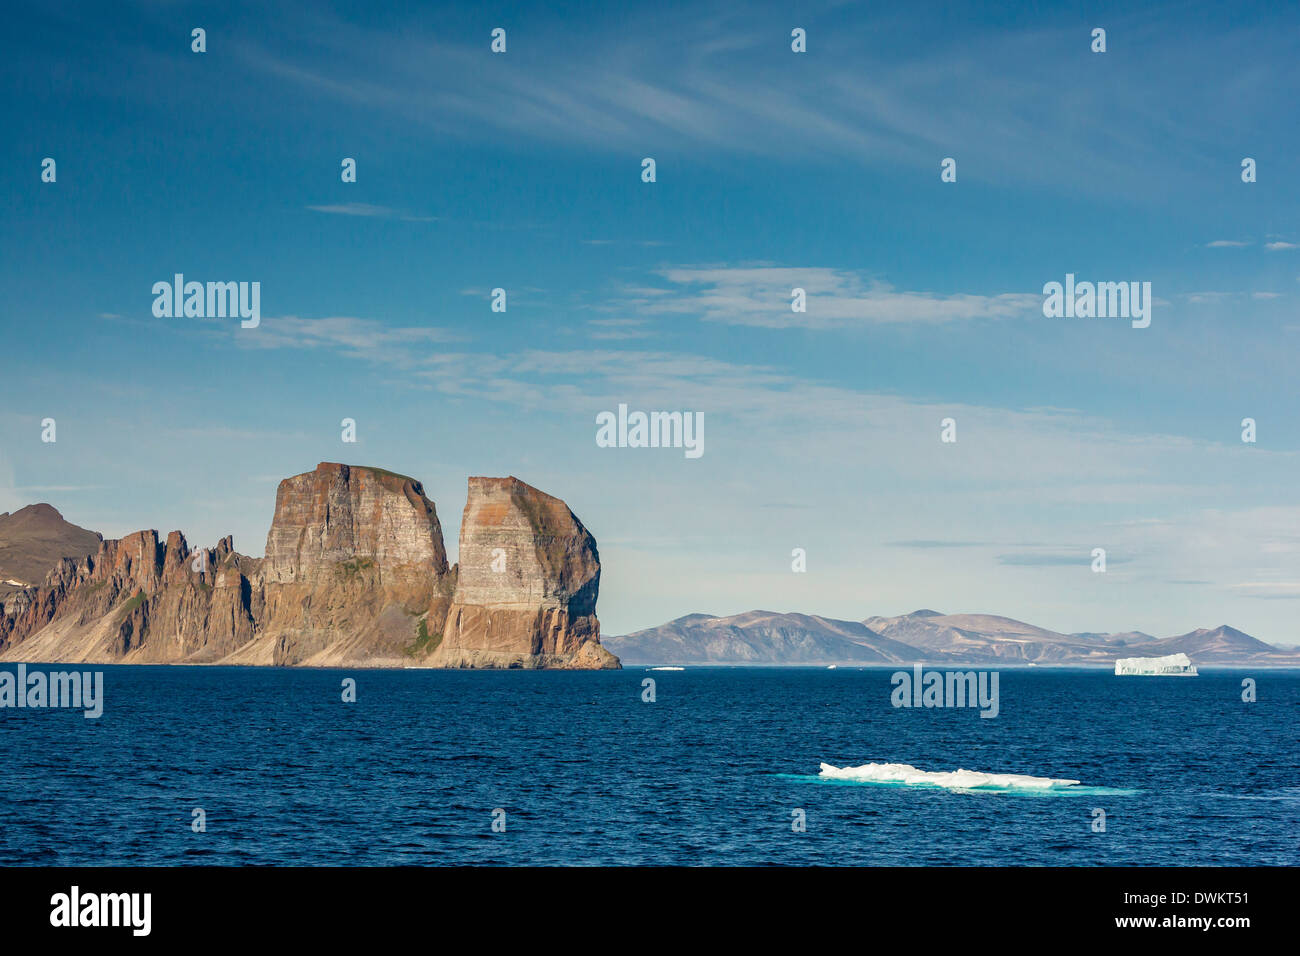 View of the jagged cliffs along the Cumberland Peninsula, Baffin Island, Nunavut, Canada, North America - Stock Image